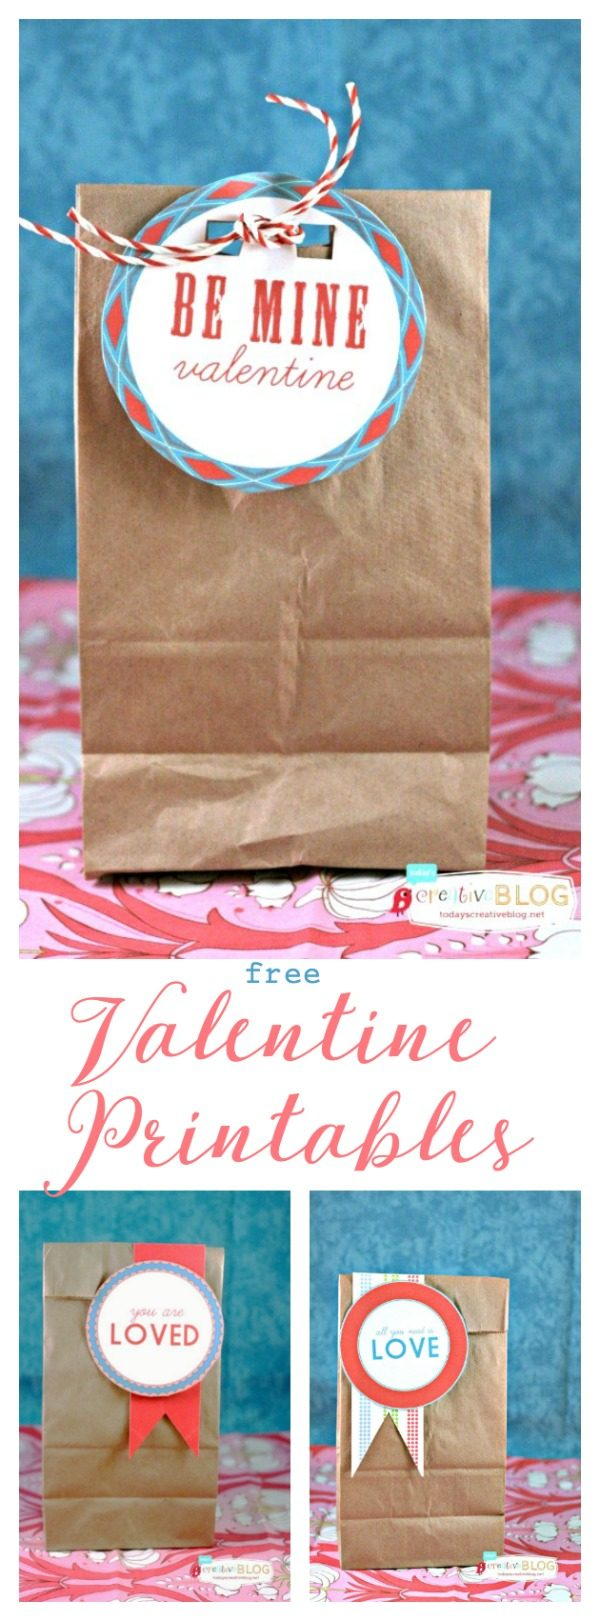 Valentines Printables | Free printable gift tags or labels for Valentine's Day. TodaysCreativeLife.com